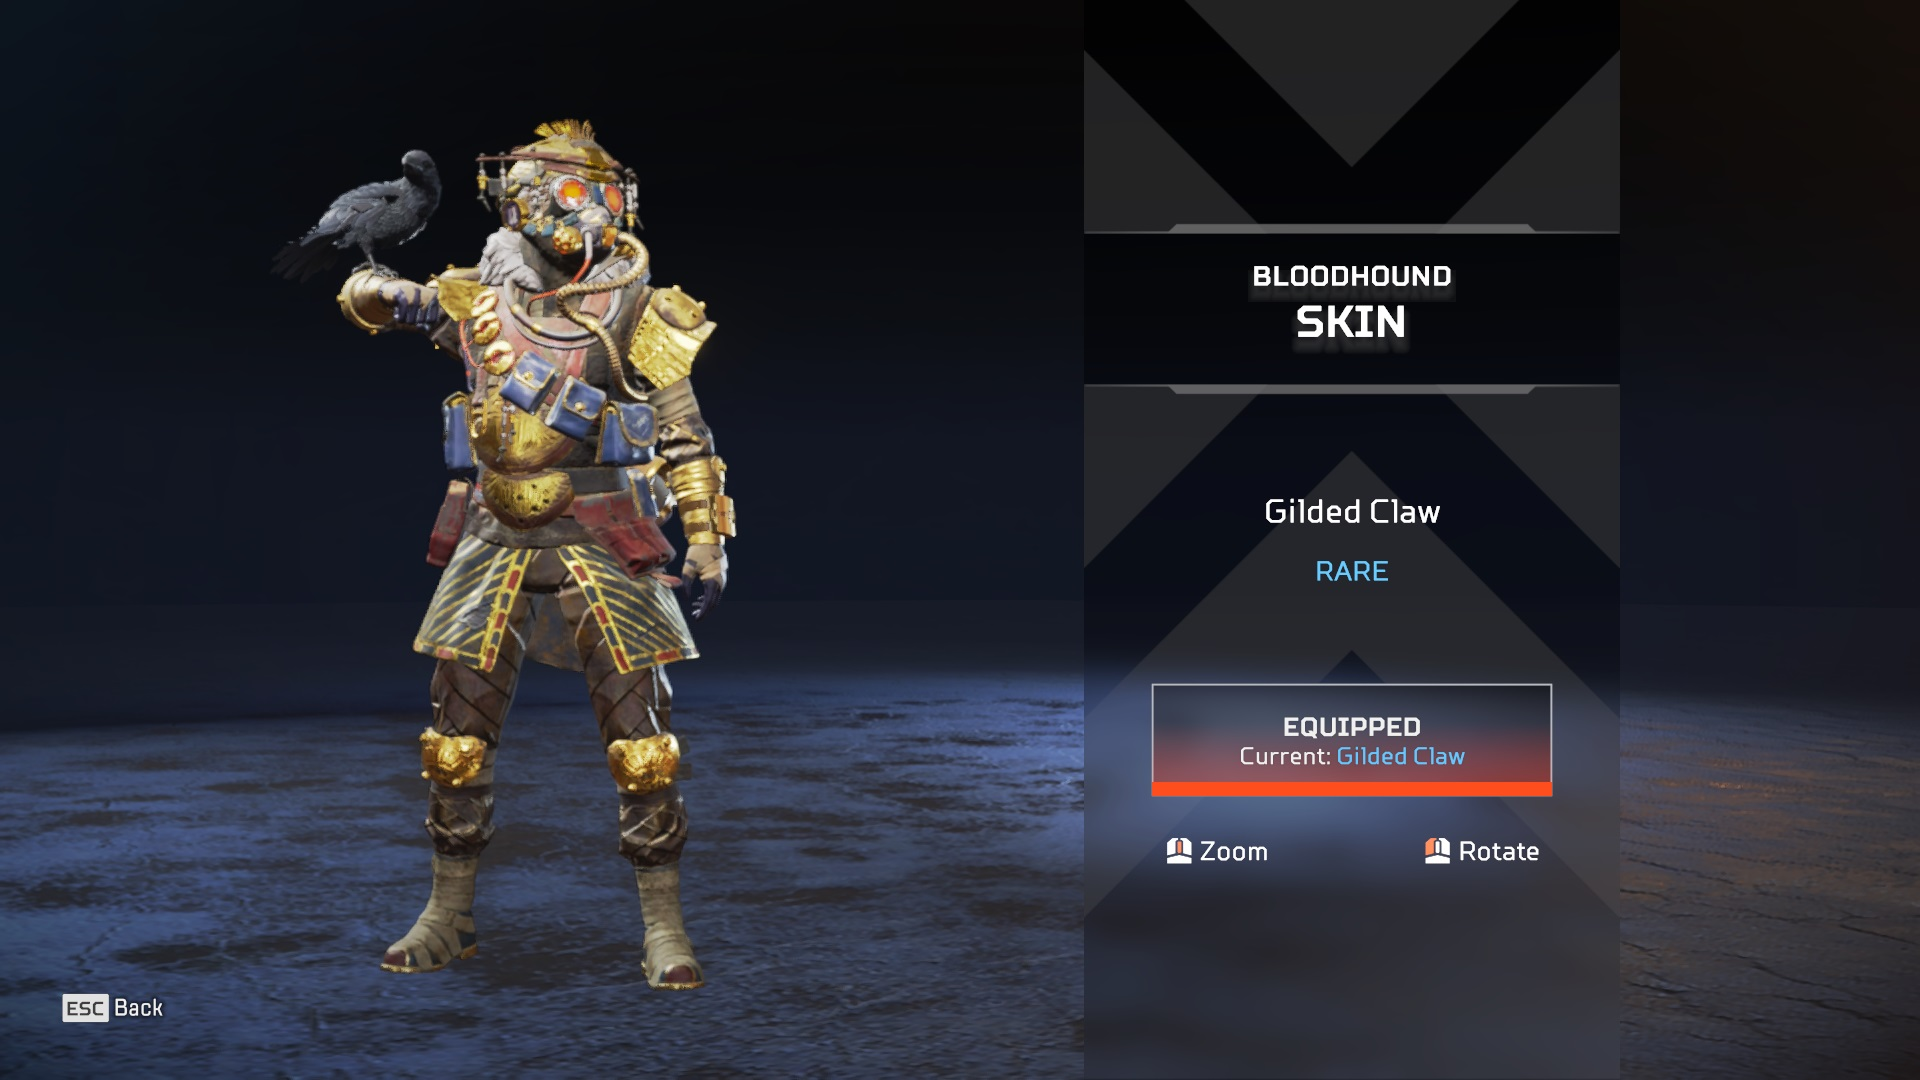 Gilded Claw Bloodhound